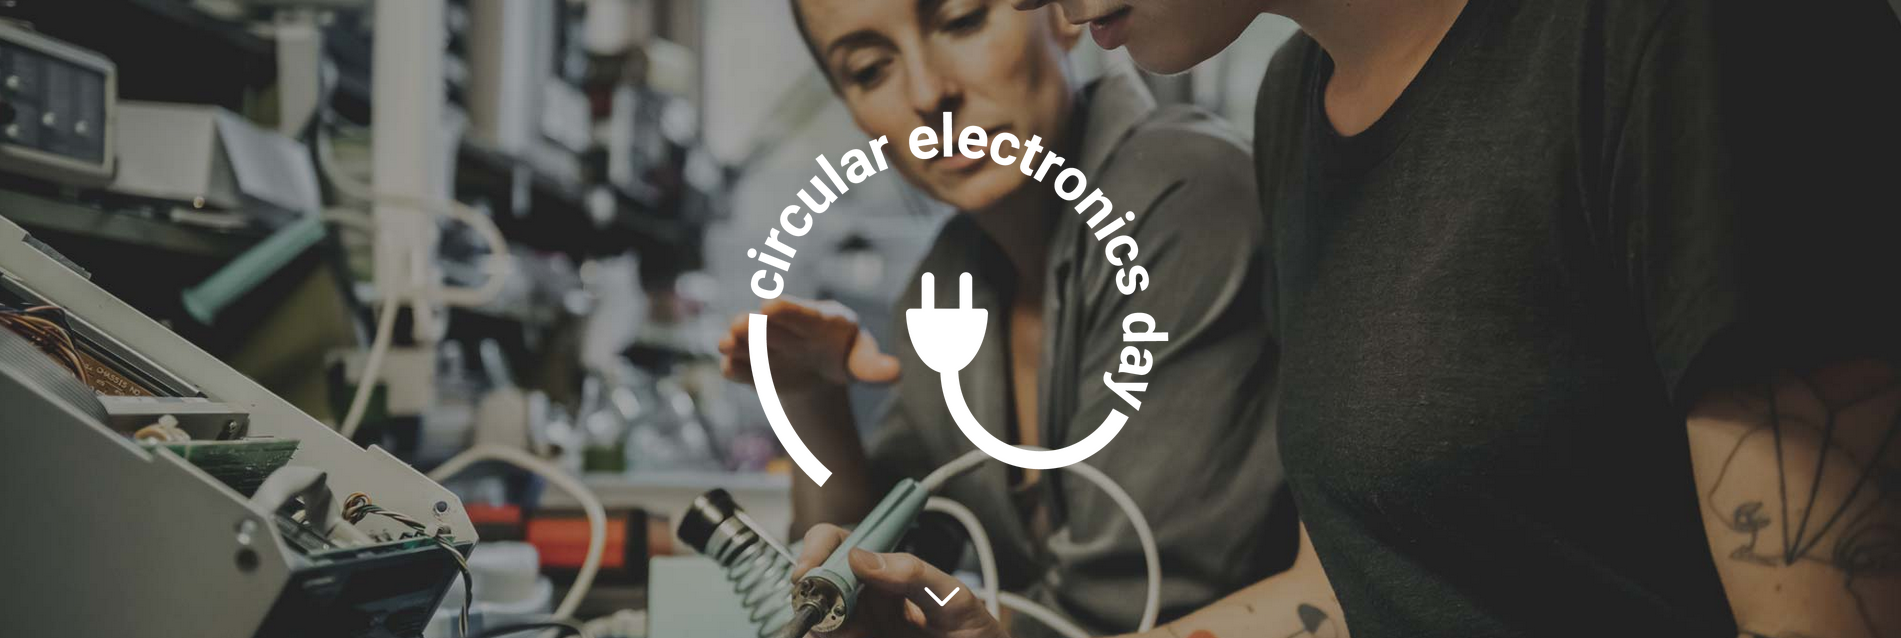 More Than 20 Organizations to Participate in Circular Electronics Day